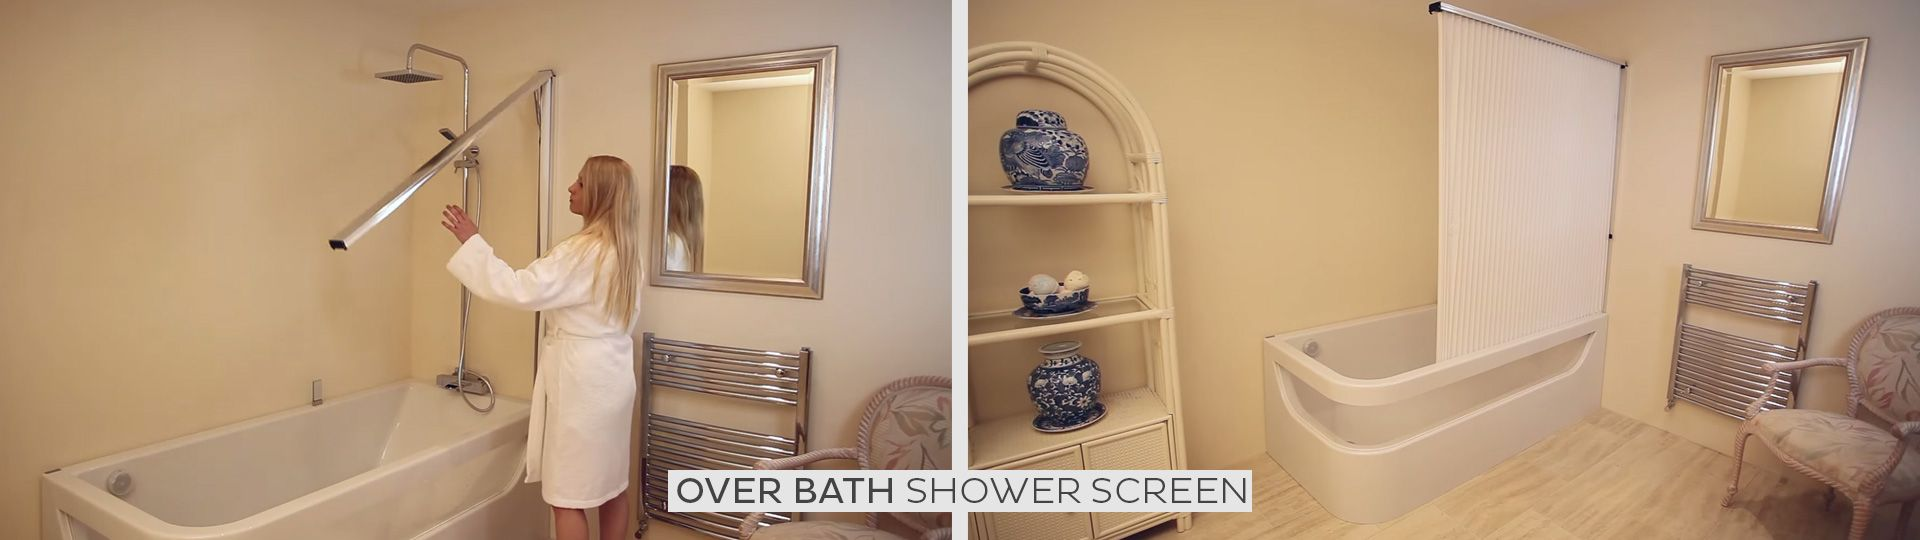 A Hidden Over Bath Shower Screen - Available at www ...